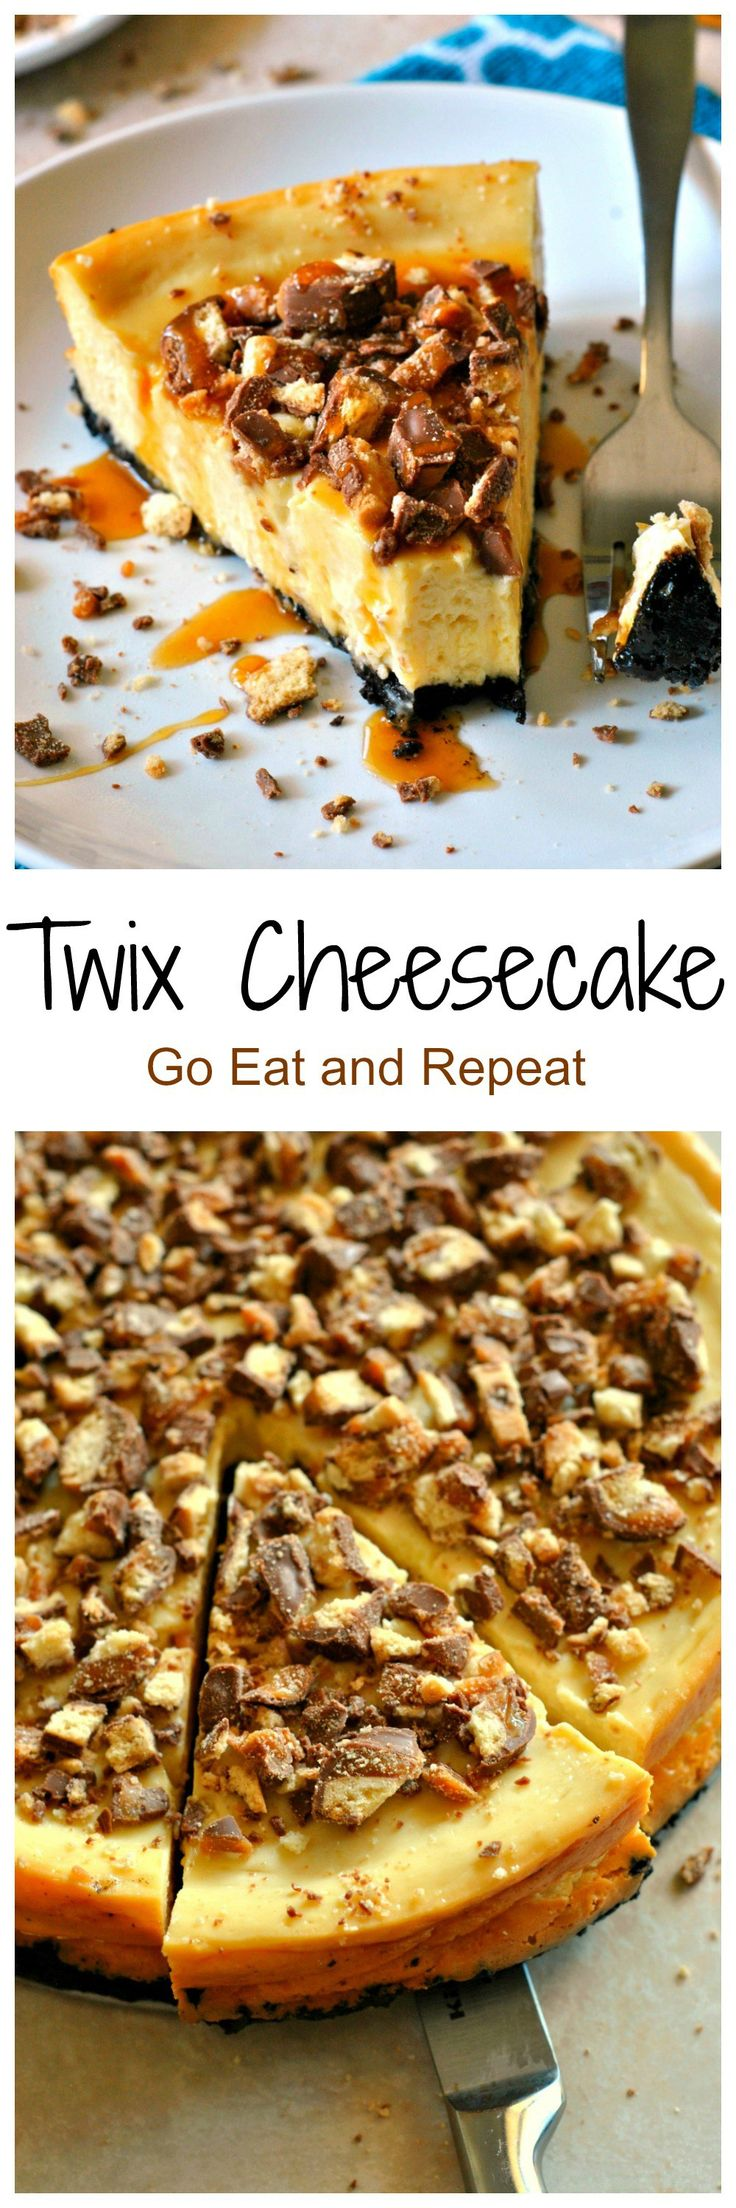 Chocolate oreo crust, smooth cheesecake, chopped Twix bars, and caramel sauce combine to make this Twix Cheesecake absolutely decadent!